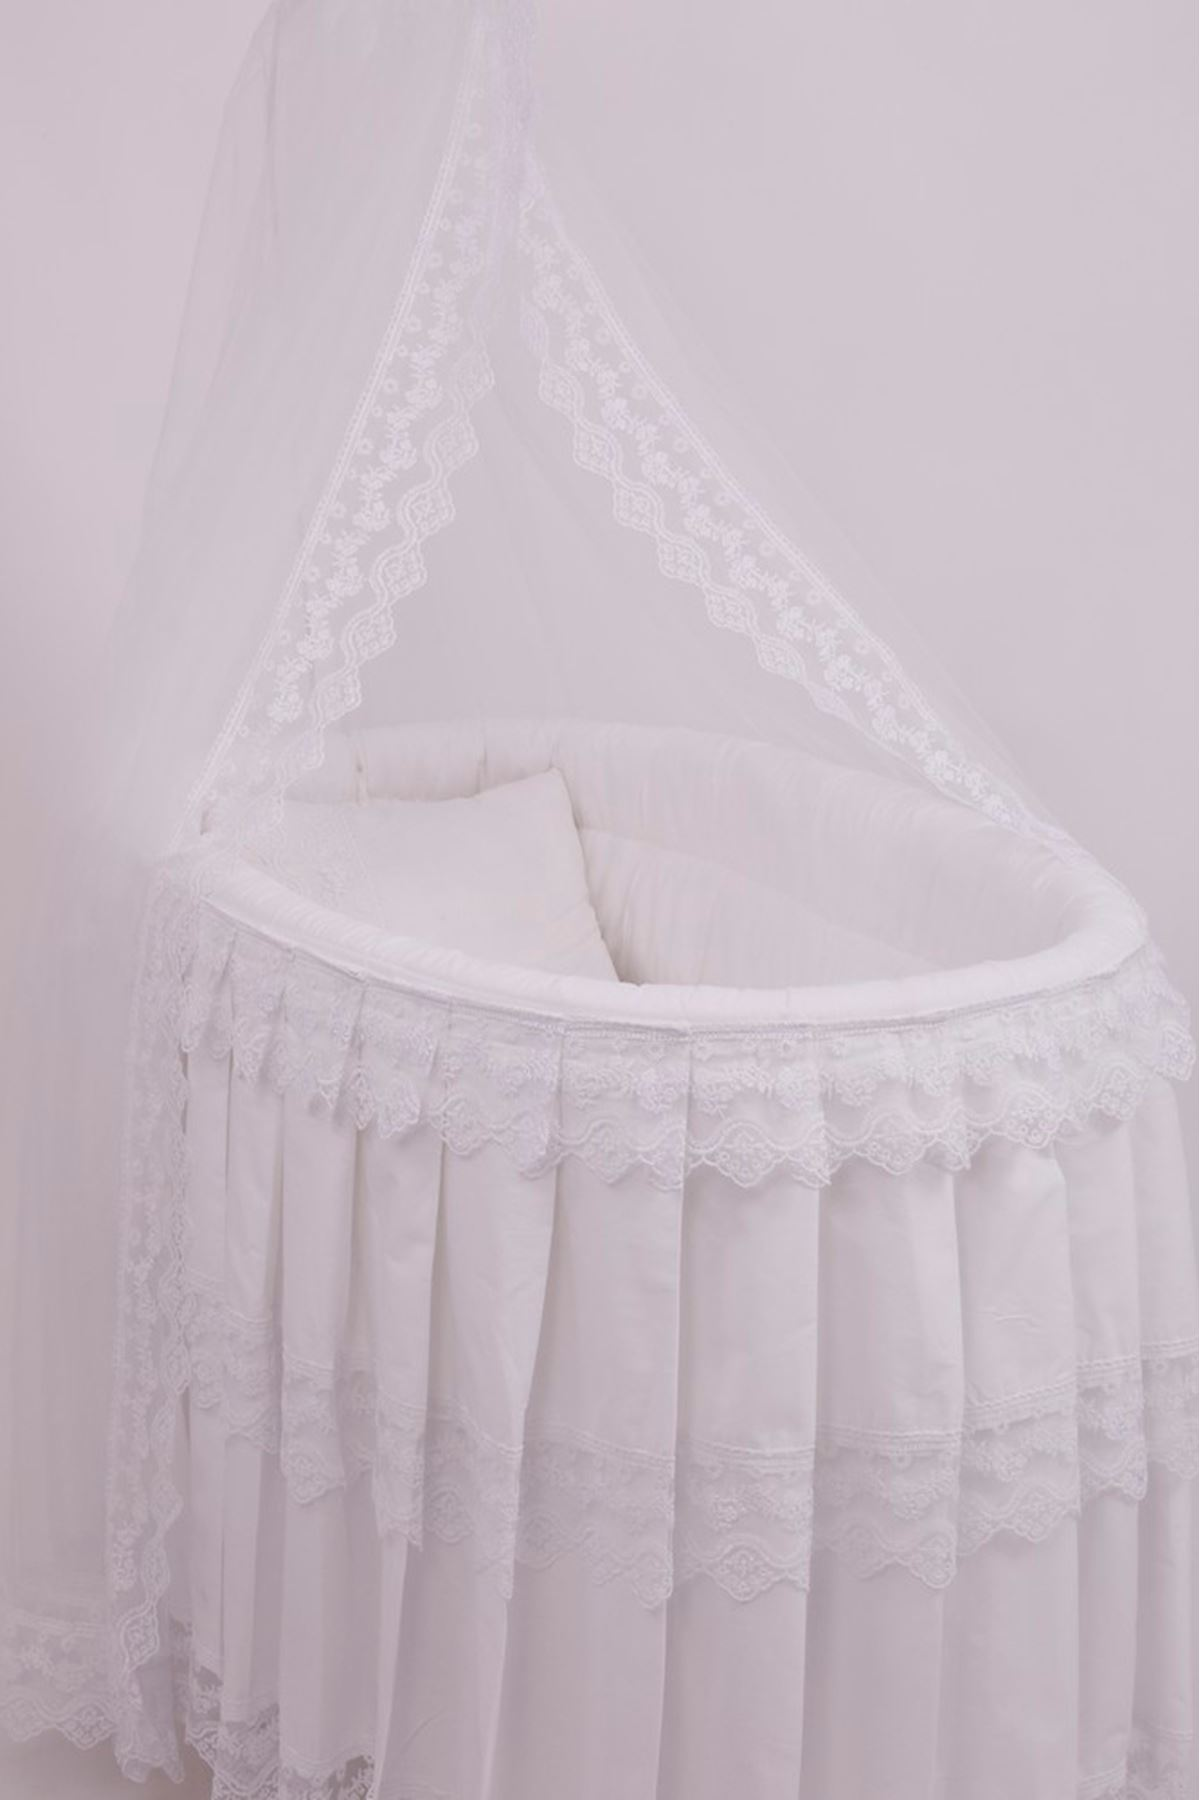 White Basket Crib With Tulle Skirt Sleeping Set